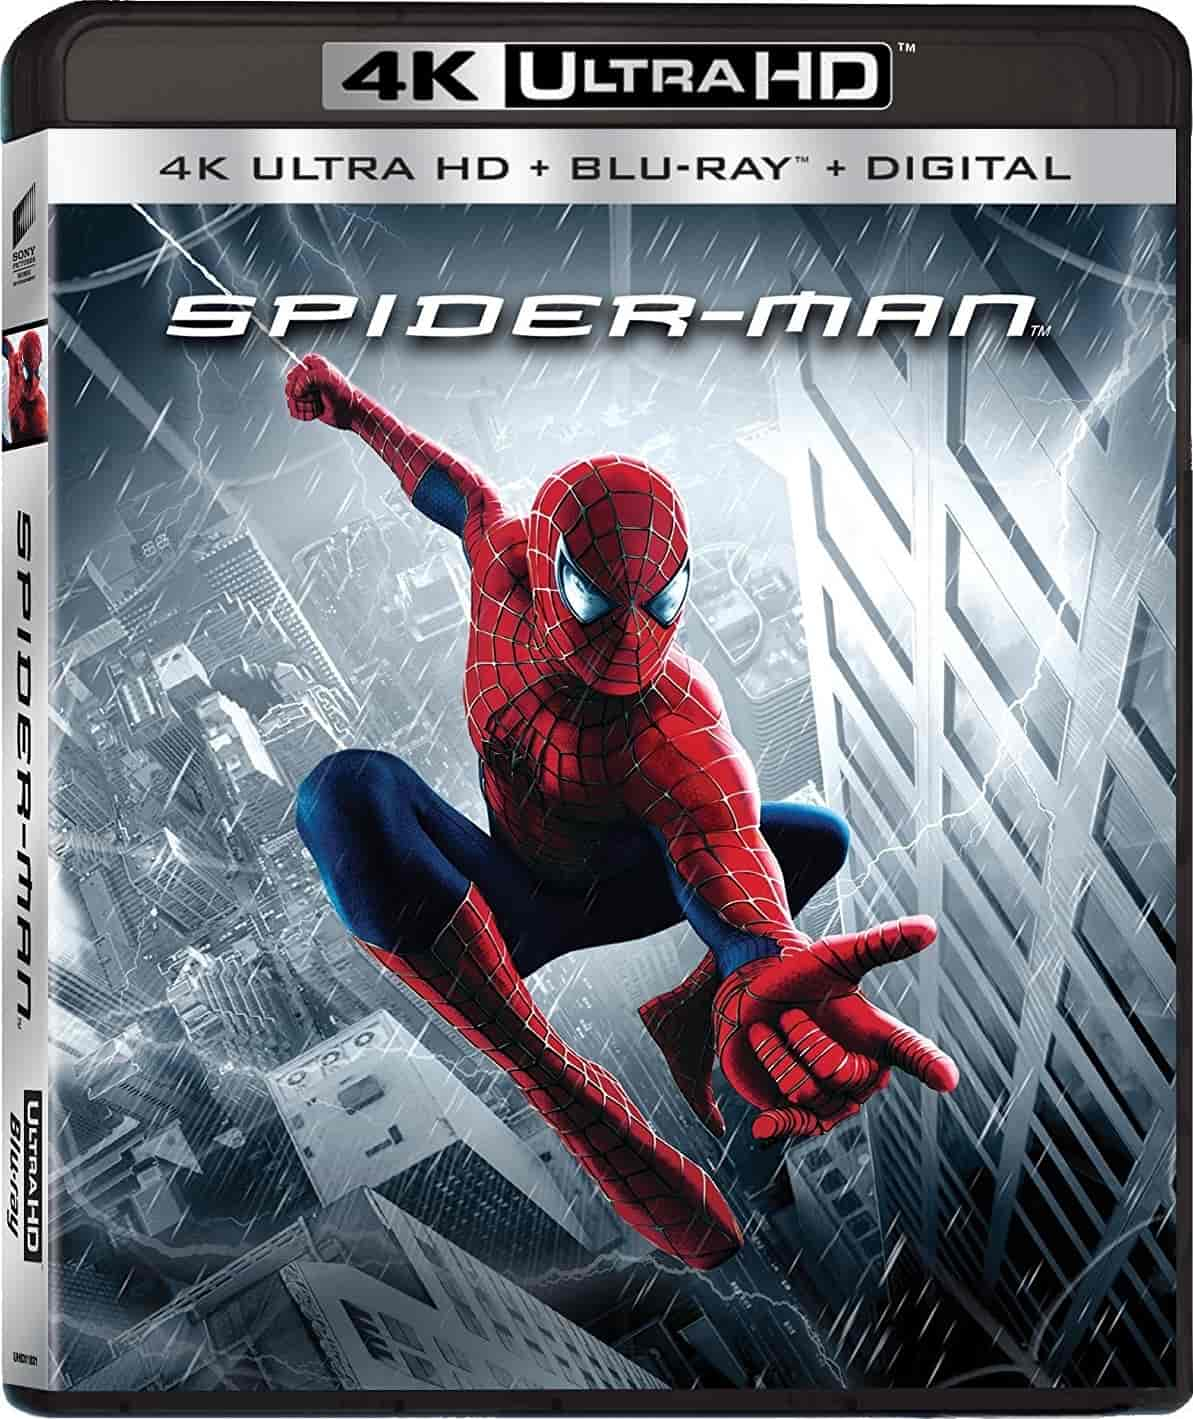 Spider-Man 4K 2002 Ultra HD Rip HDR » Download RIPS Movies 4K HDR